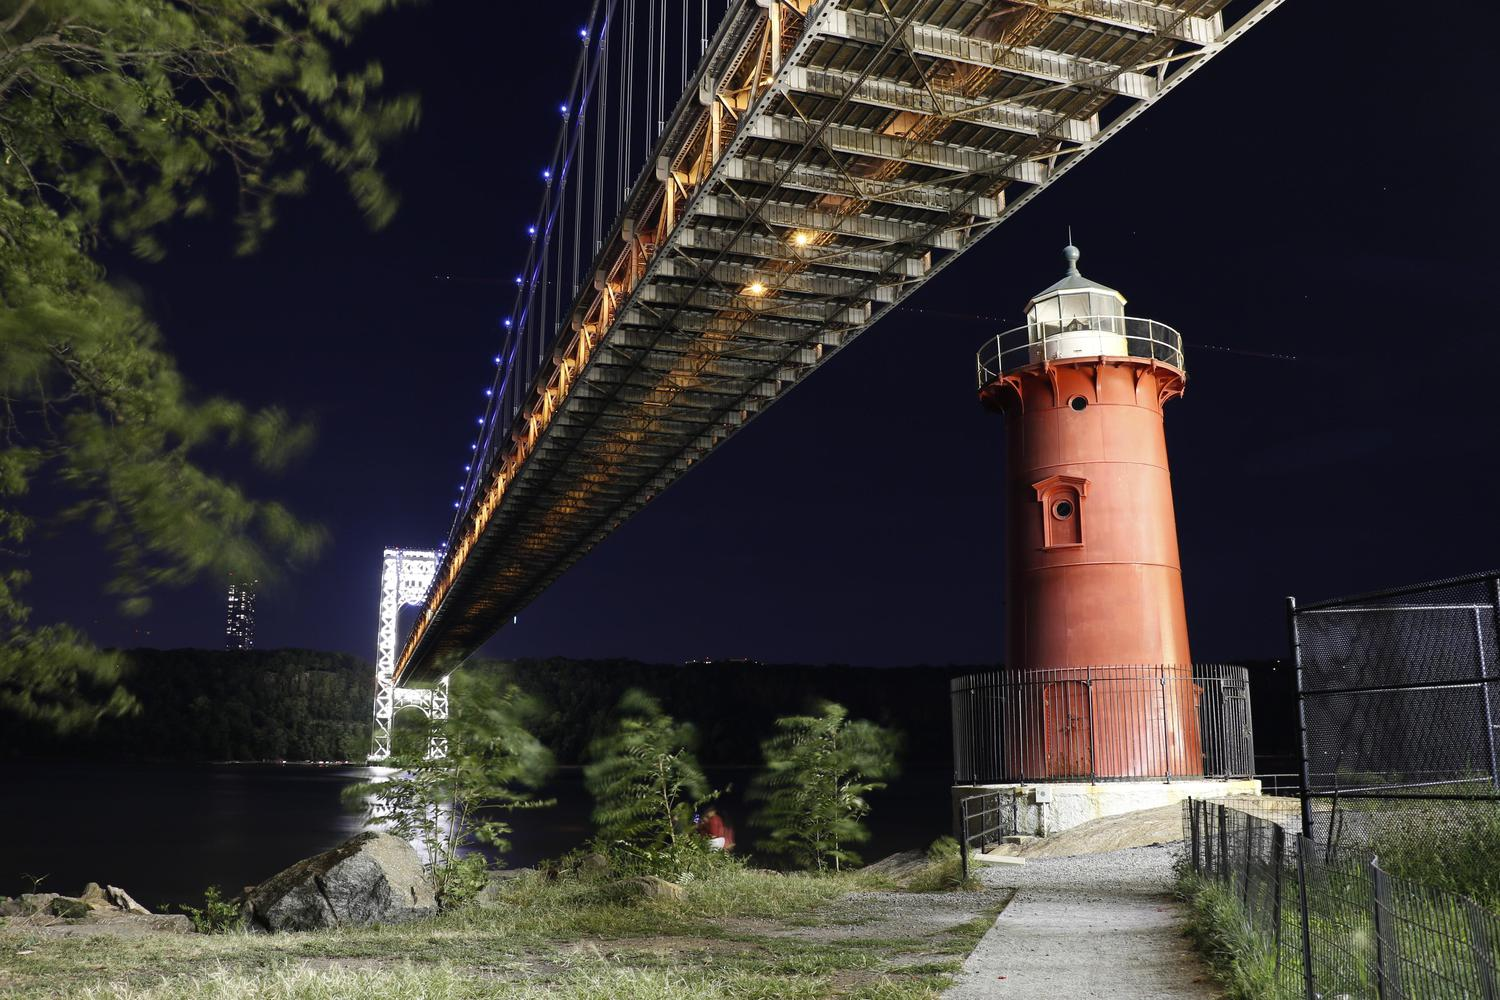 The Little Red Lighthouse with the GWB tower light up for 9/11 tribute